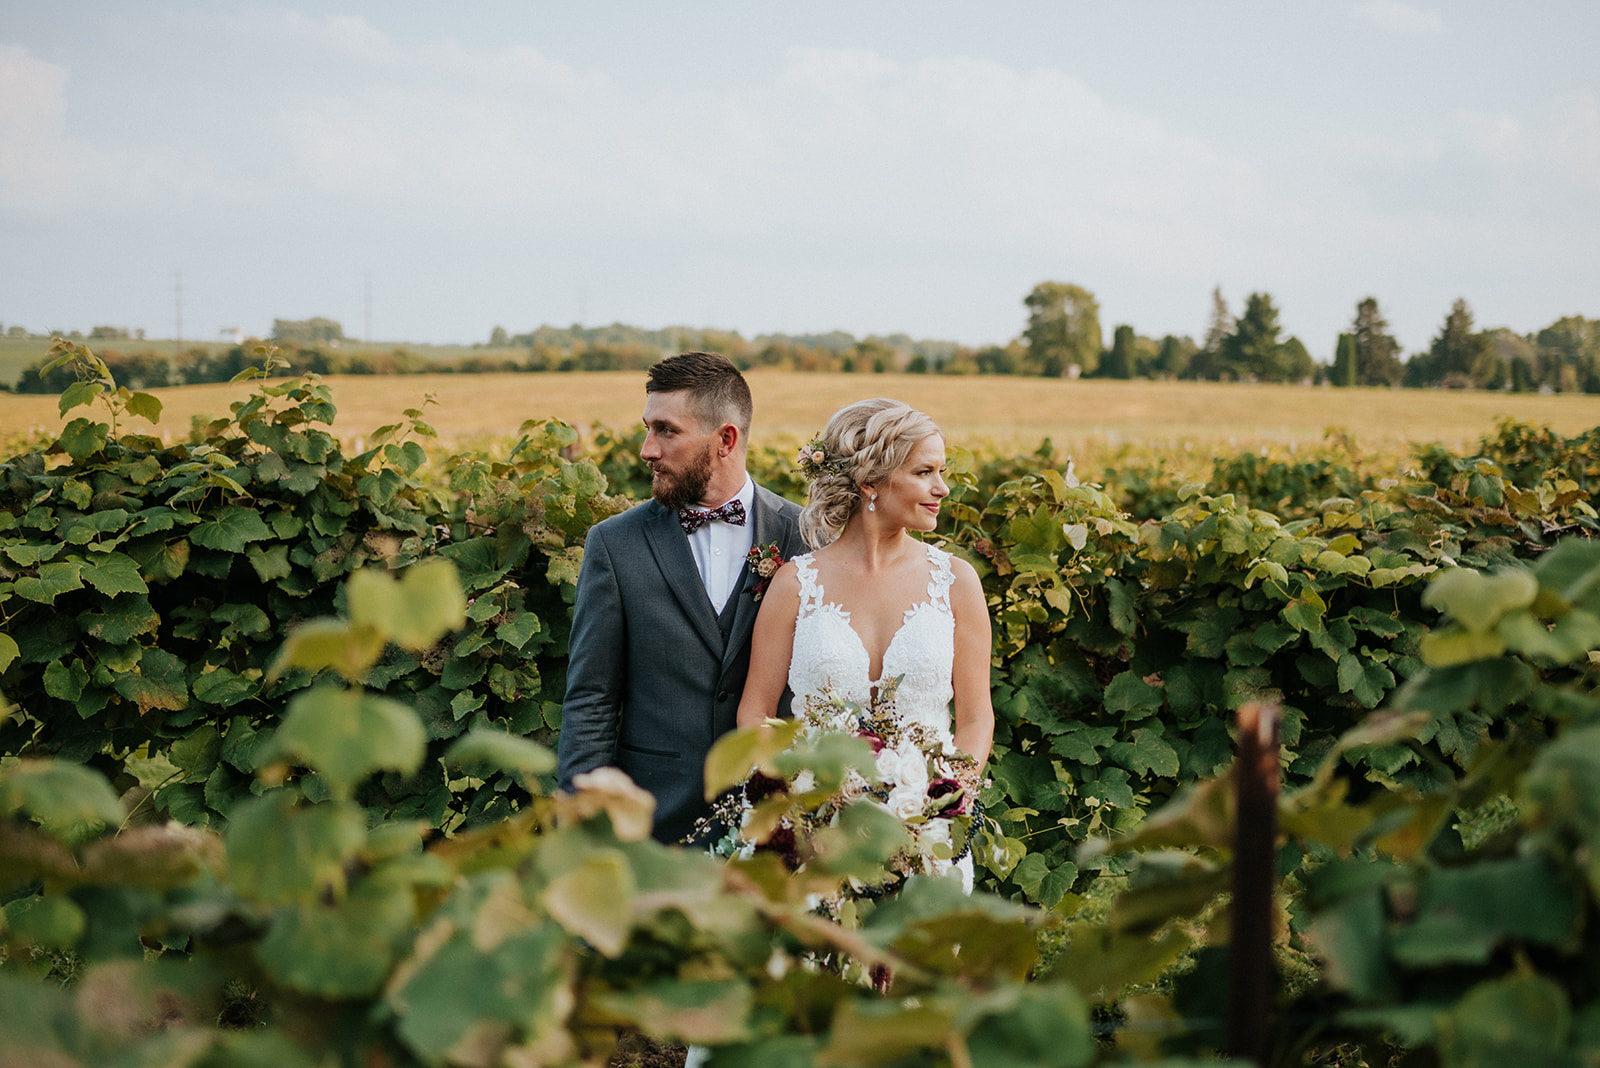 overthevineswisconsinwedding_0925.jpg